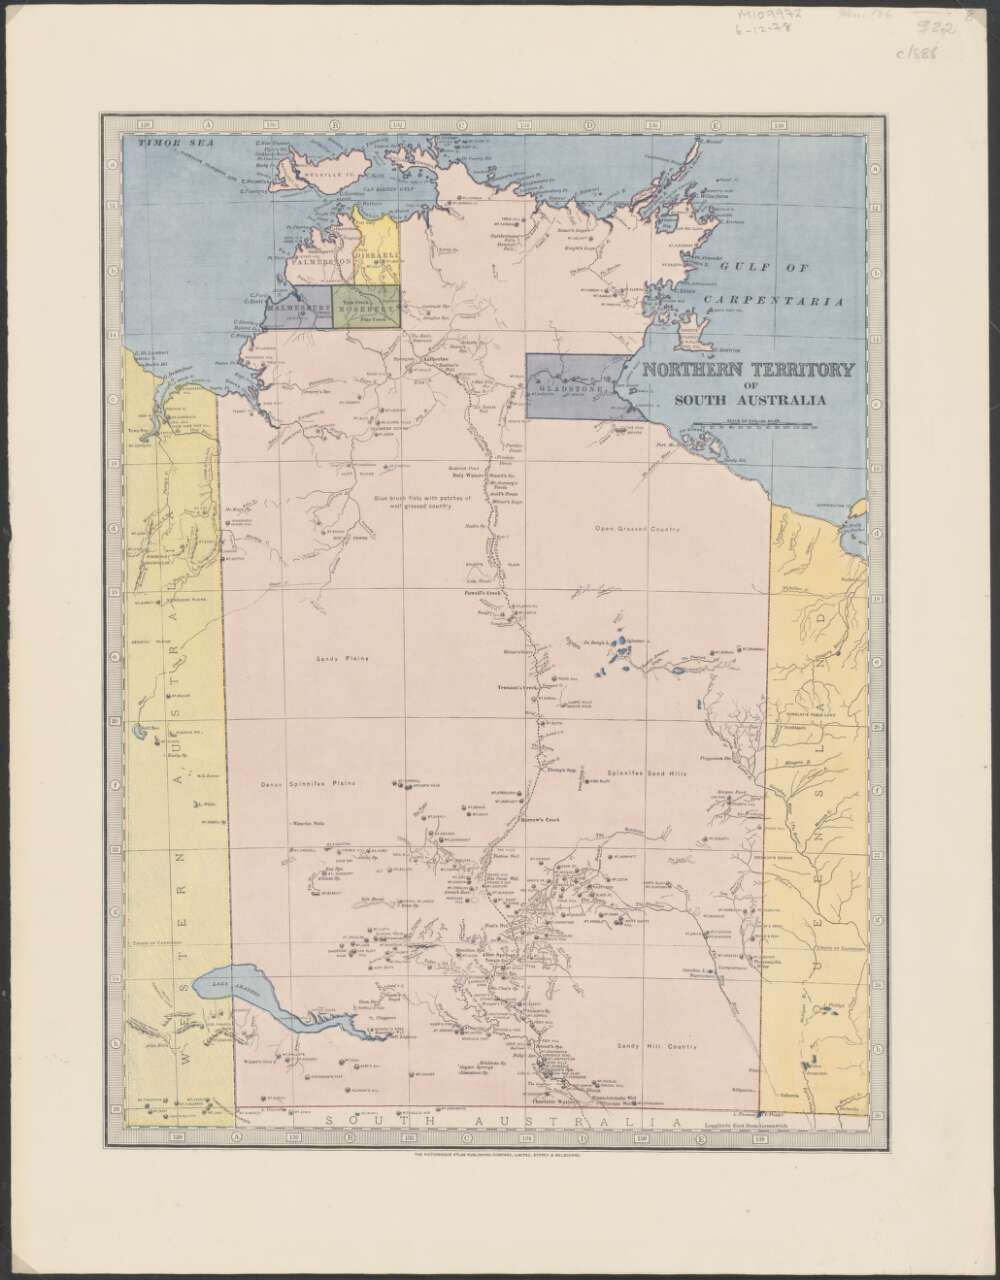 Map Of South Australia And Northern Territory.Northern Territory Of South Australia 1886 Map Australia Maps